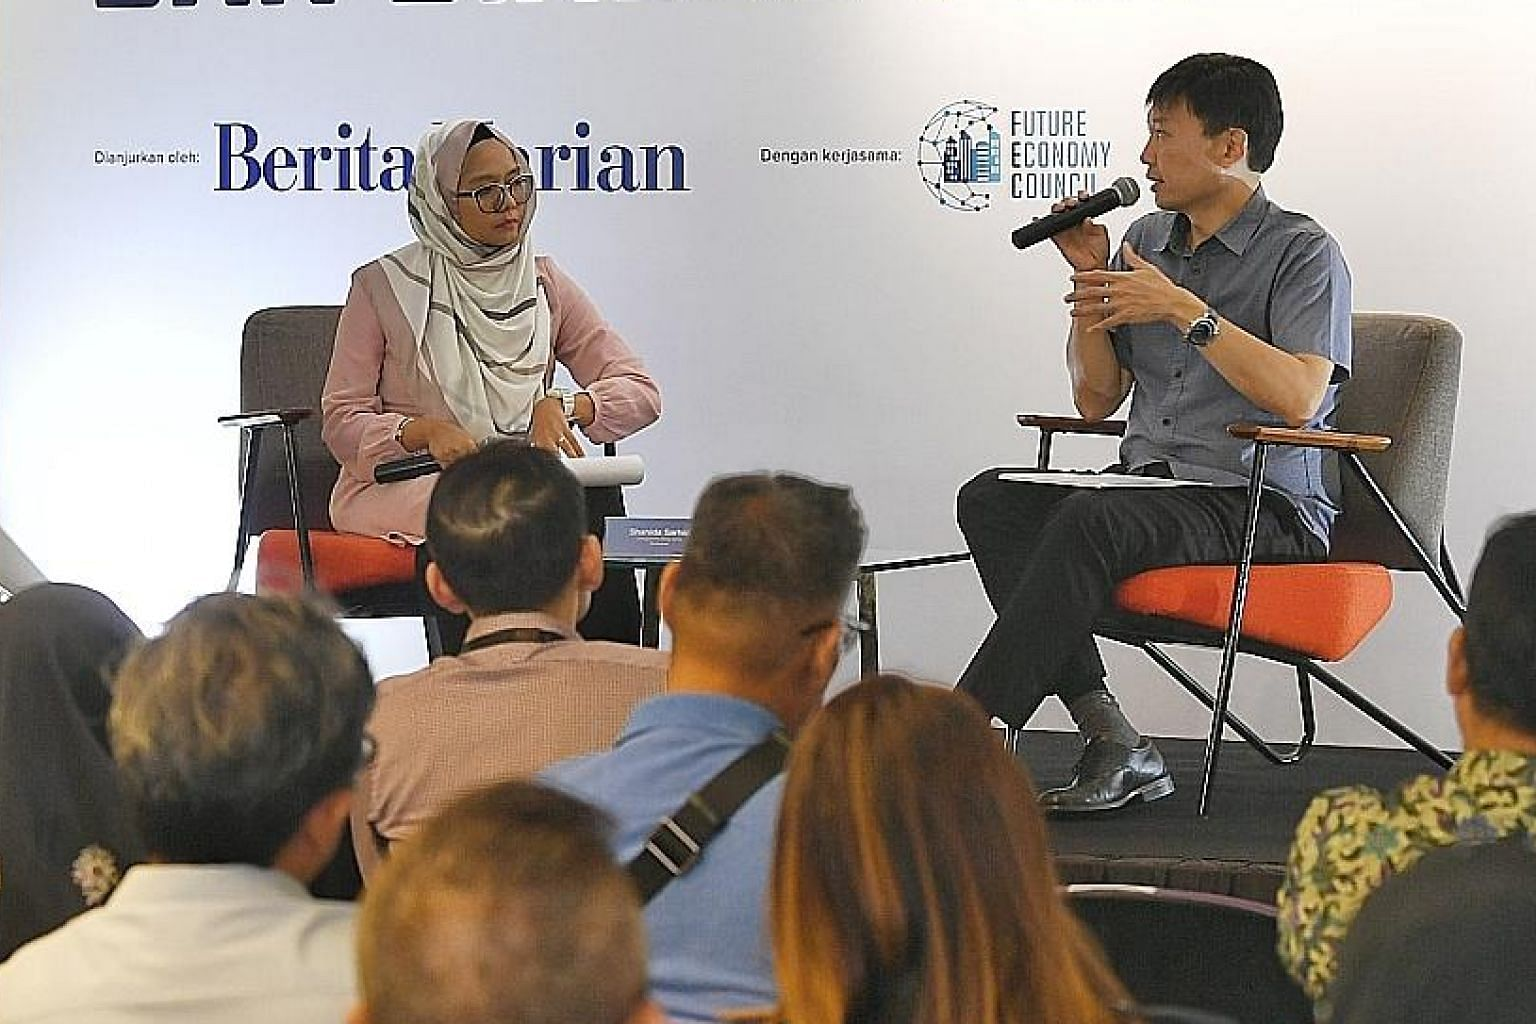 Senior Minister of State for Trade and Industry Chee Hong Tat speaking at the Berita Harian Future Economy Seminar and Dialogue at Singapore Polytechnic yesterday. With him was Berita Harian correspondent Shahida Sarhid, who was the moderator.